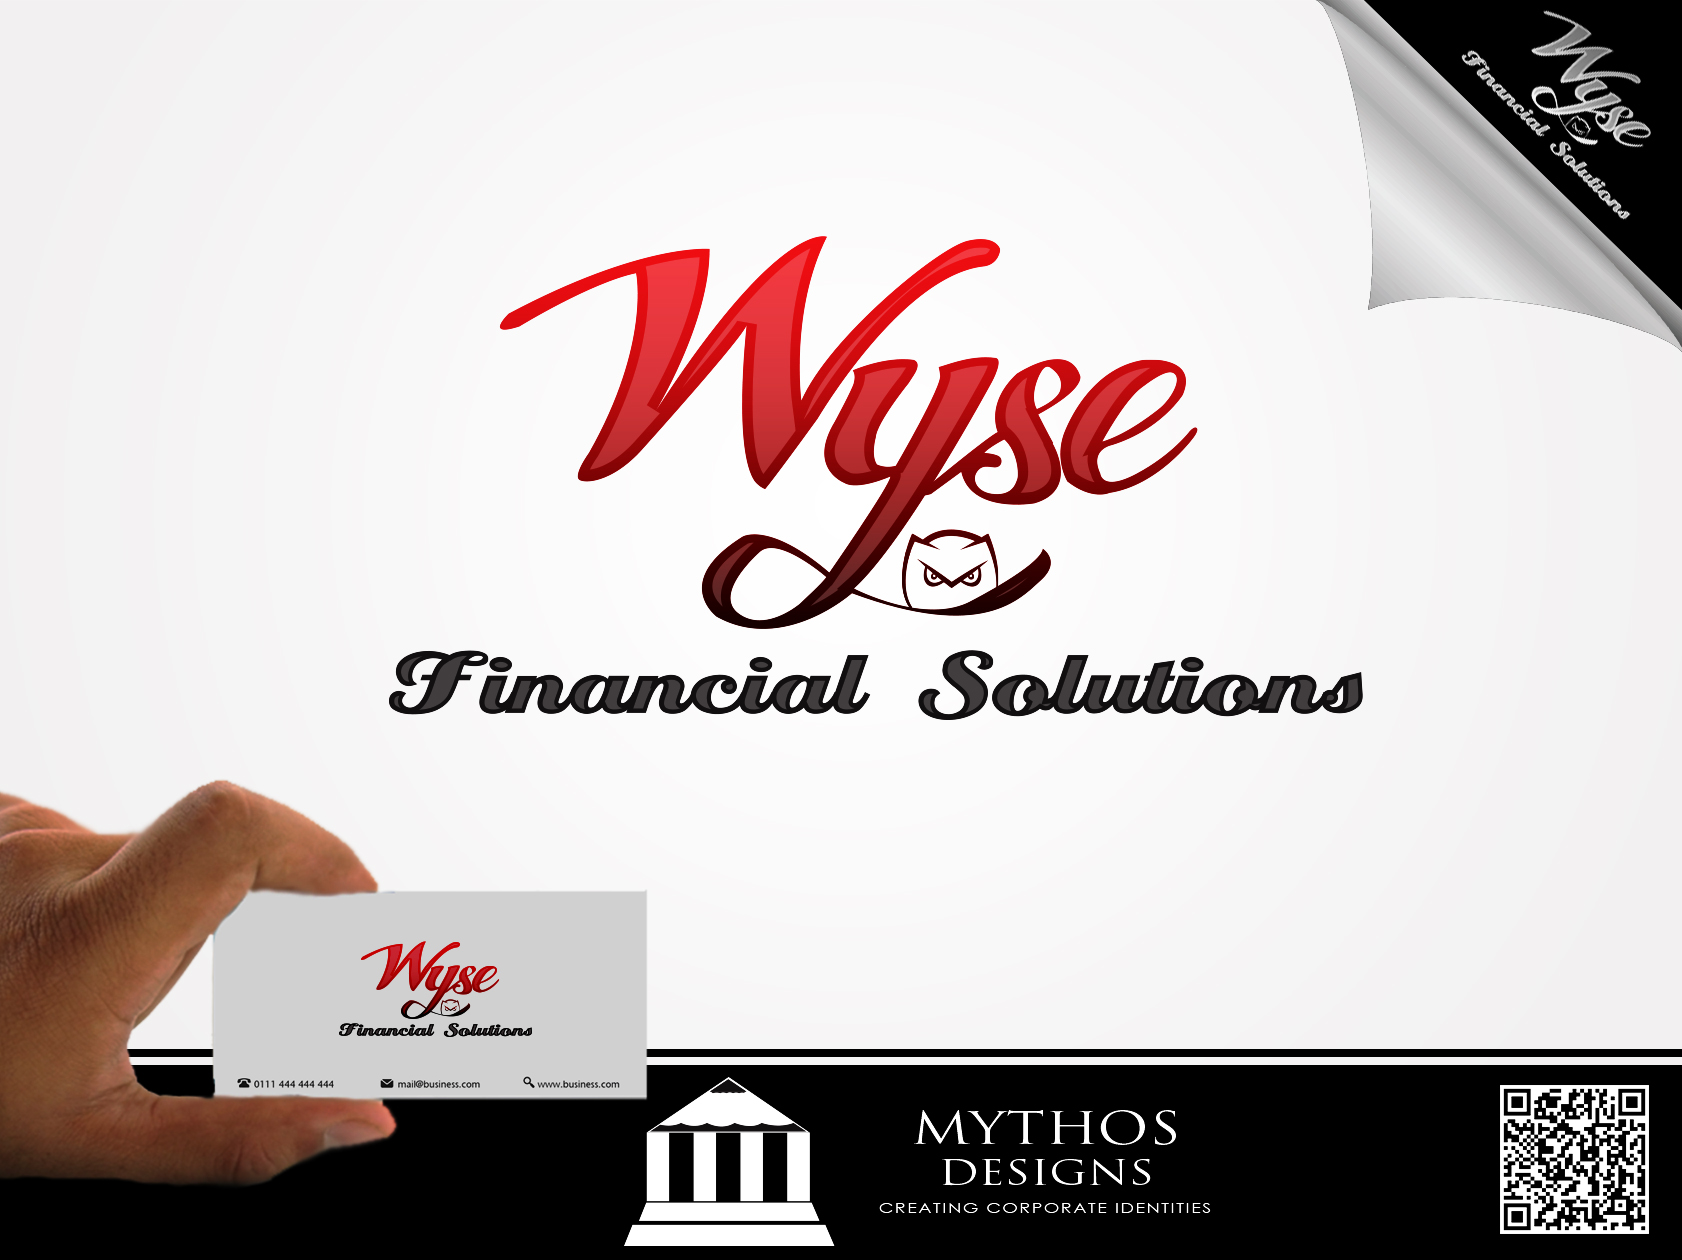 Logo Design by Mythos Designs - Entry No. 68 in the Logo Design Contest Fun Logo Design for Wyse Financial Solutions.